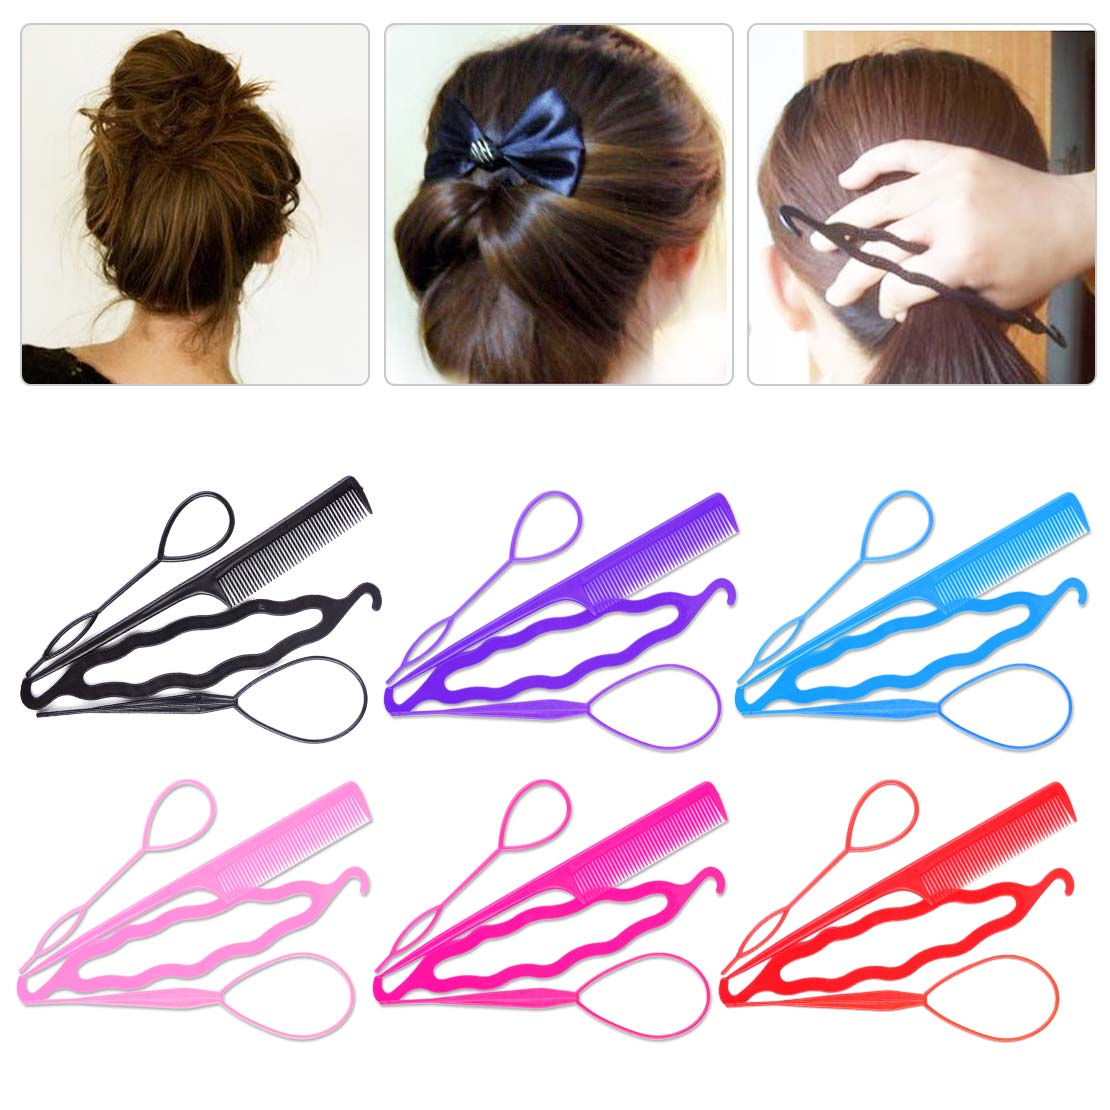 4X Set Magic Topsy Tail Hair Braid Ponytail Styling Maker Clip Tools Accessories